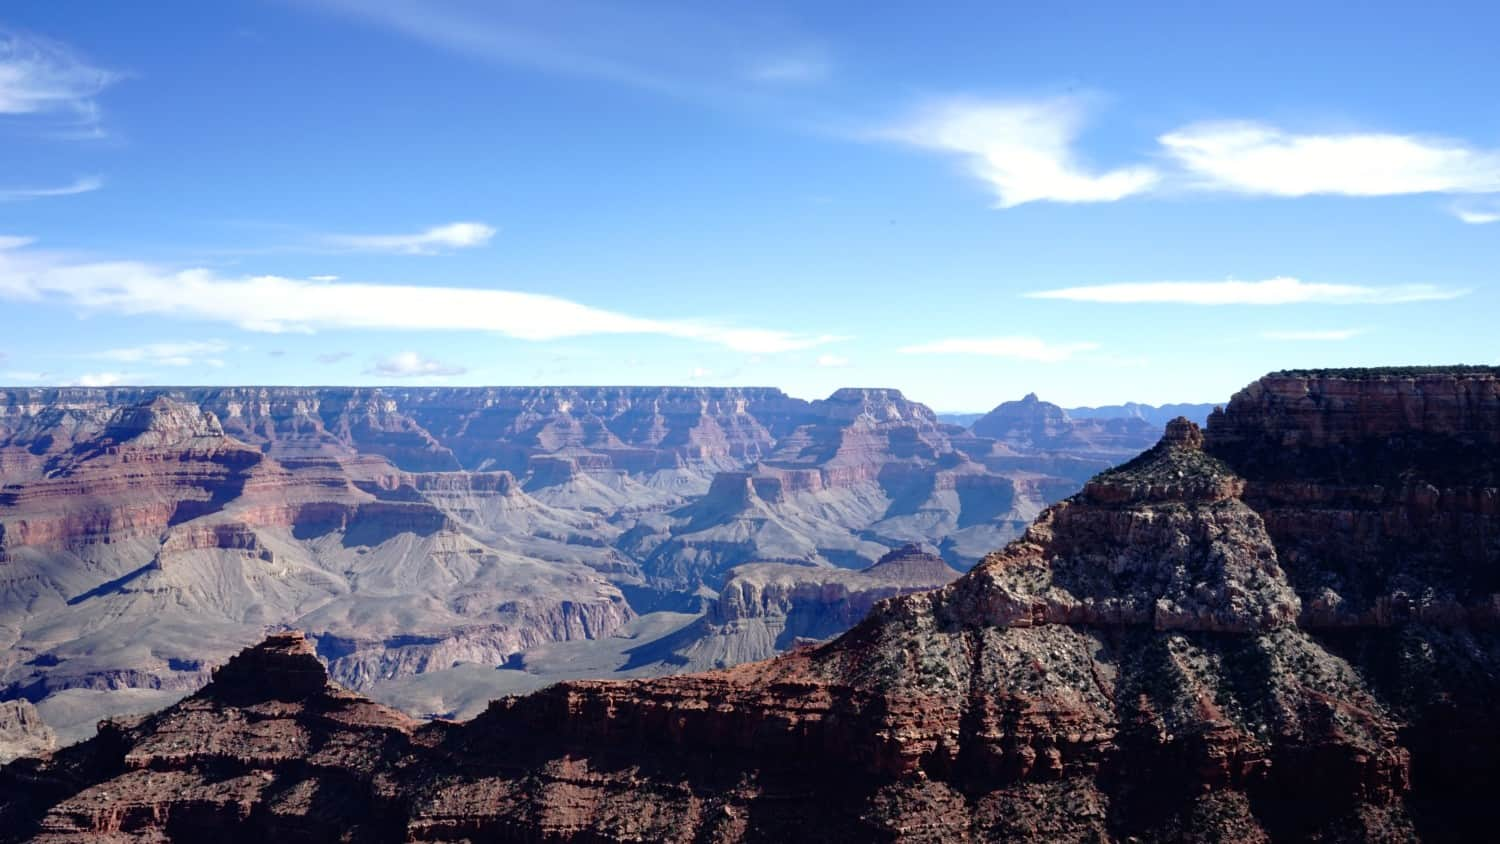 Arizona's Top Pet Friendly Attraction: The Grand Canyon | GoPetFriendly.com